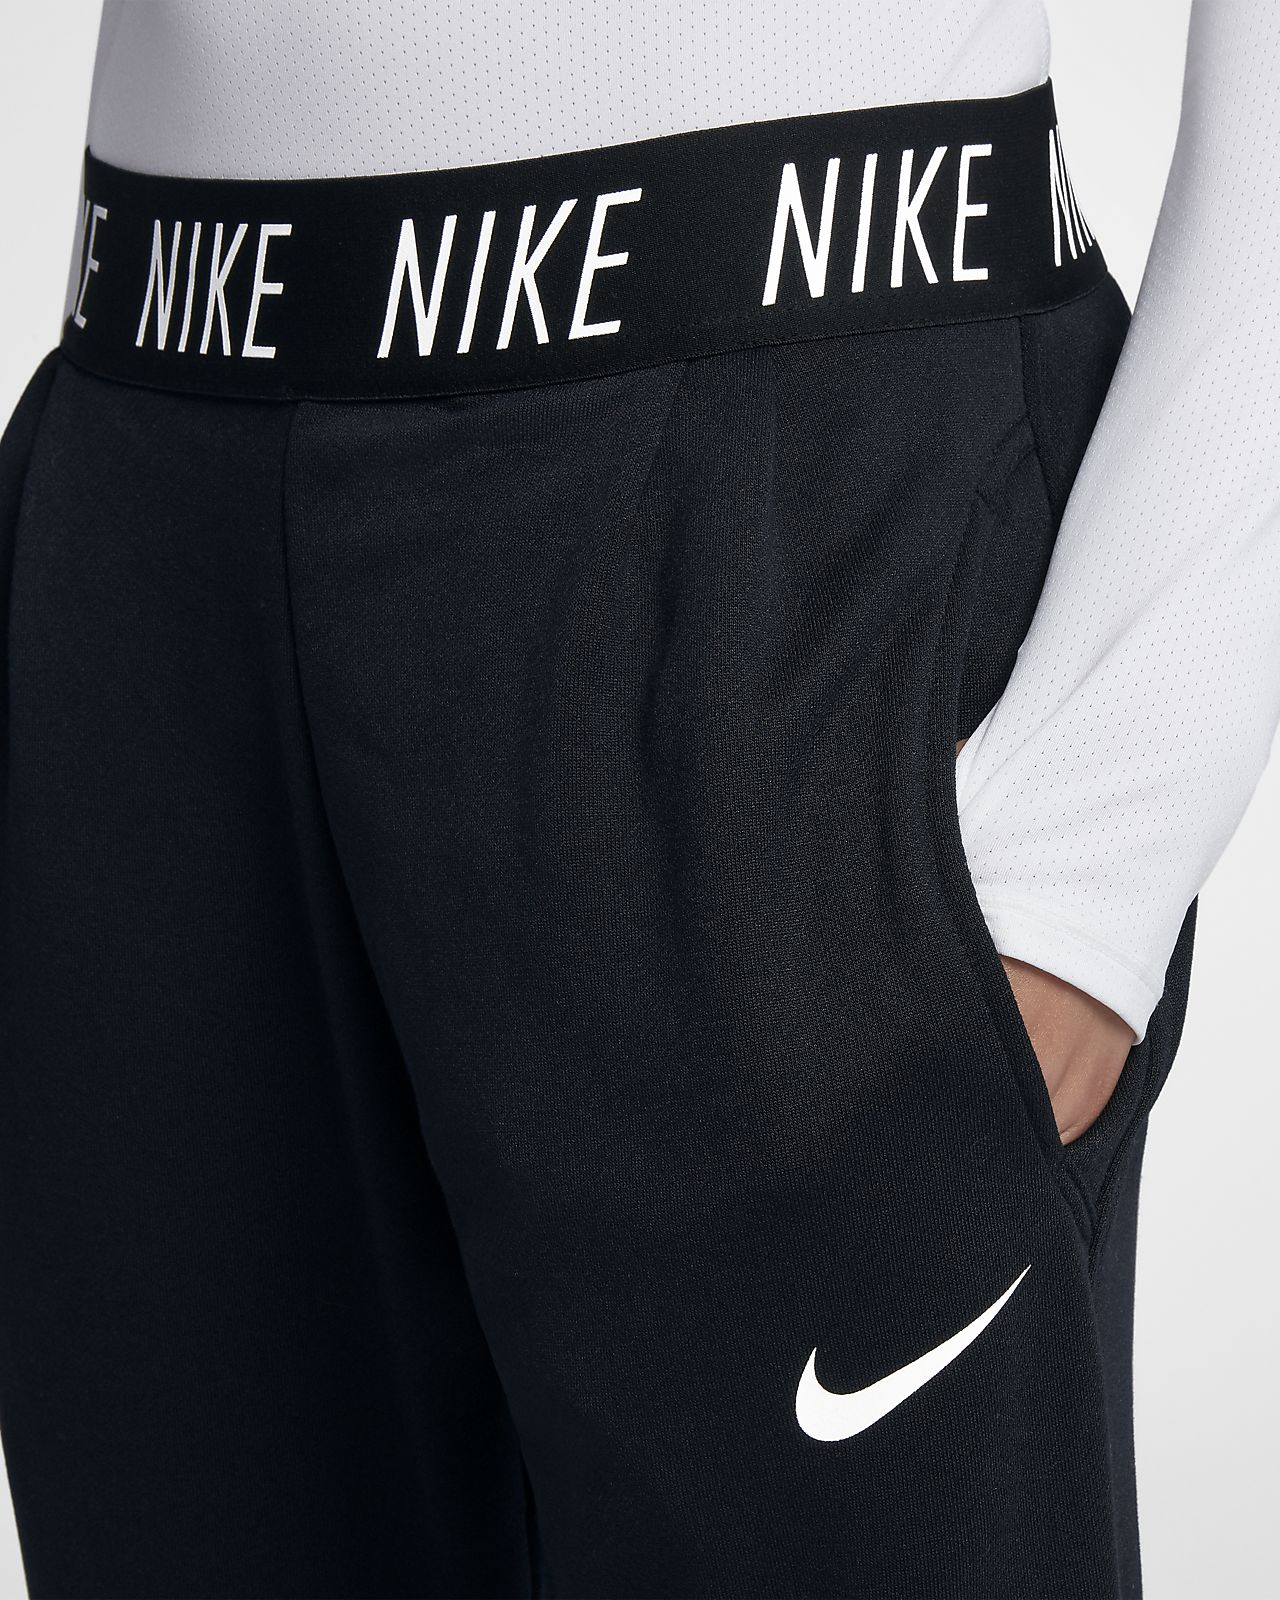 cdeeb1933add Nike Dri-FIT Core Studio Big Kids  (Girls ) Training Pants. Nike.com